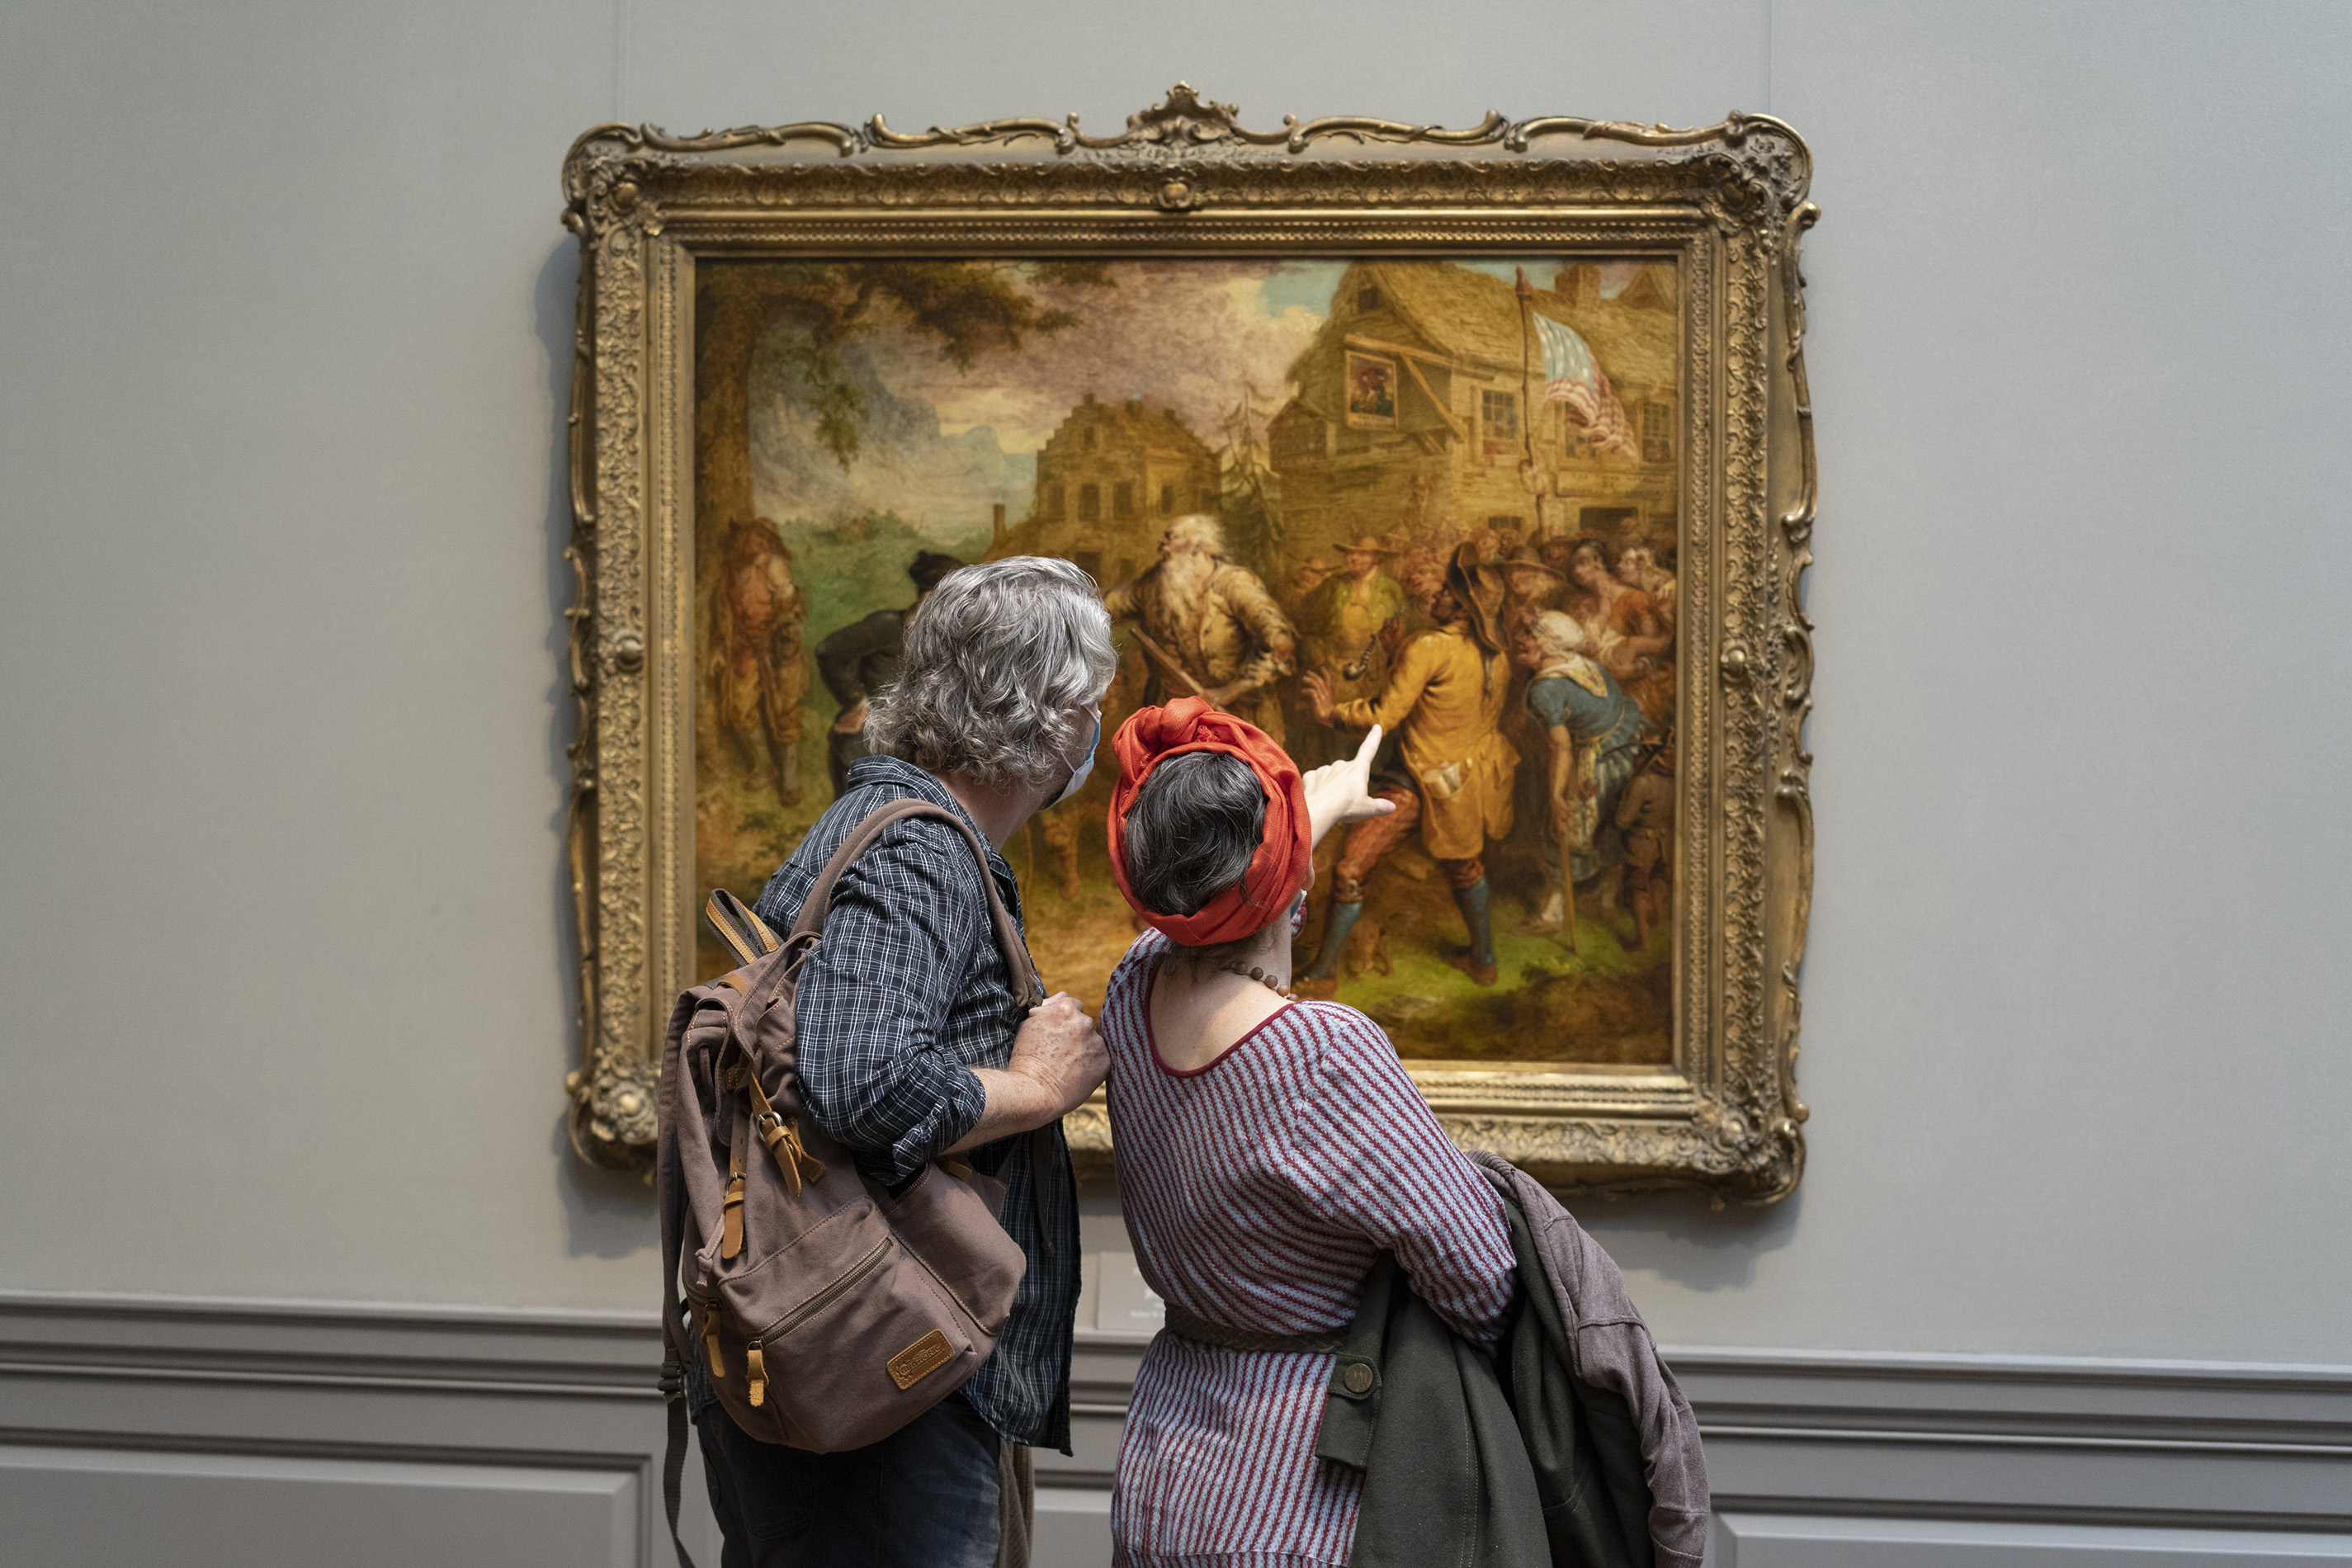 Two people stand together with their backs to the viewer while looking at a painting of a crowd of people. The person on the right gestures with her hand at a detail of the painting.